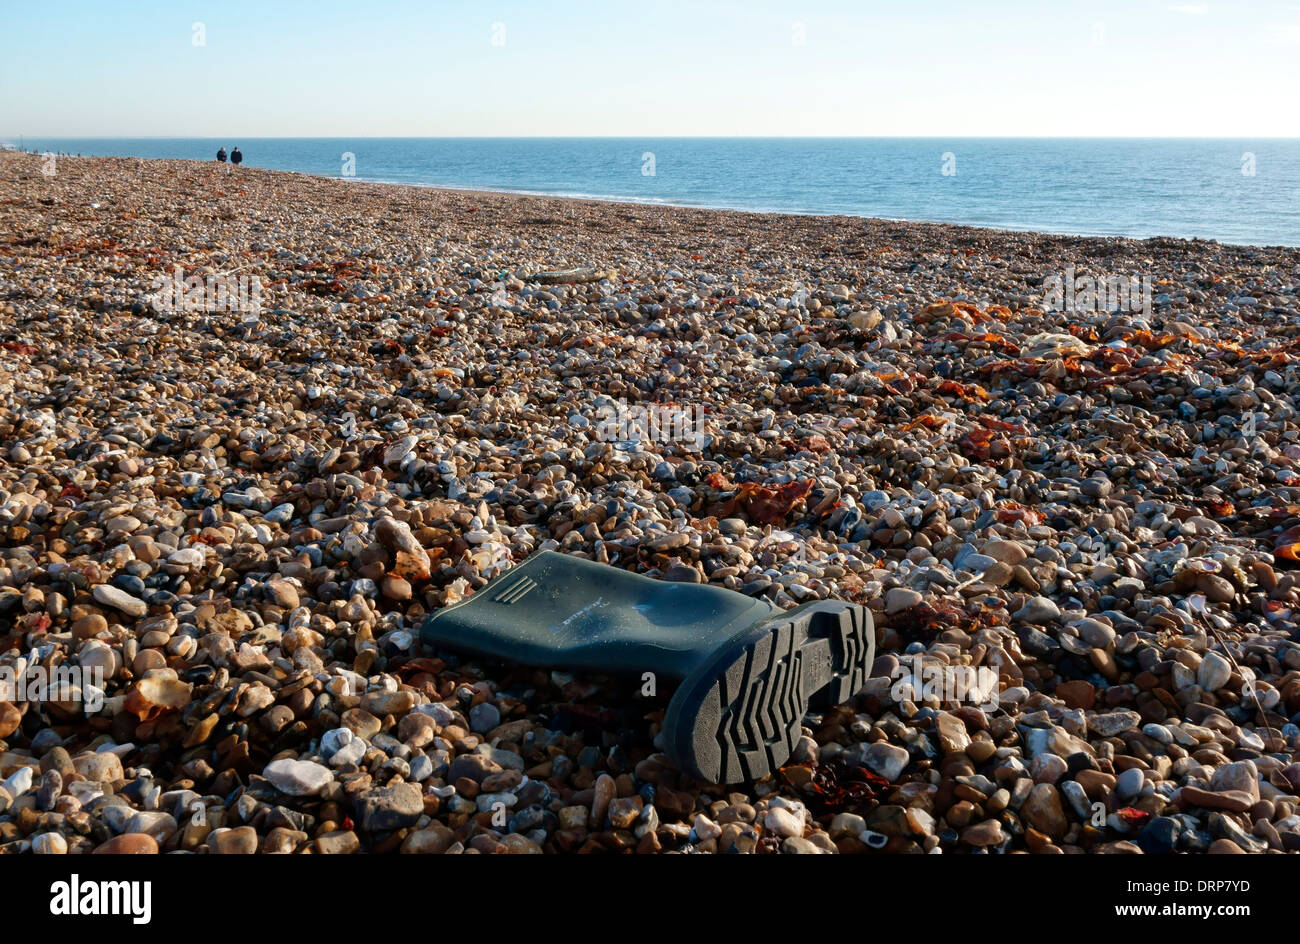 Welly boot on the beach, Hayling Island, Hampshire, UK Stock Photo